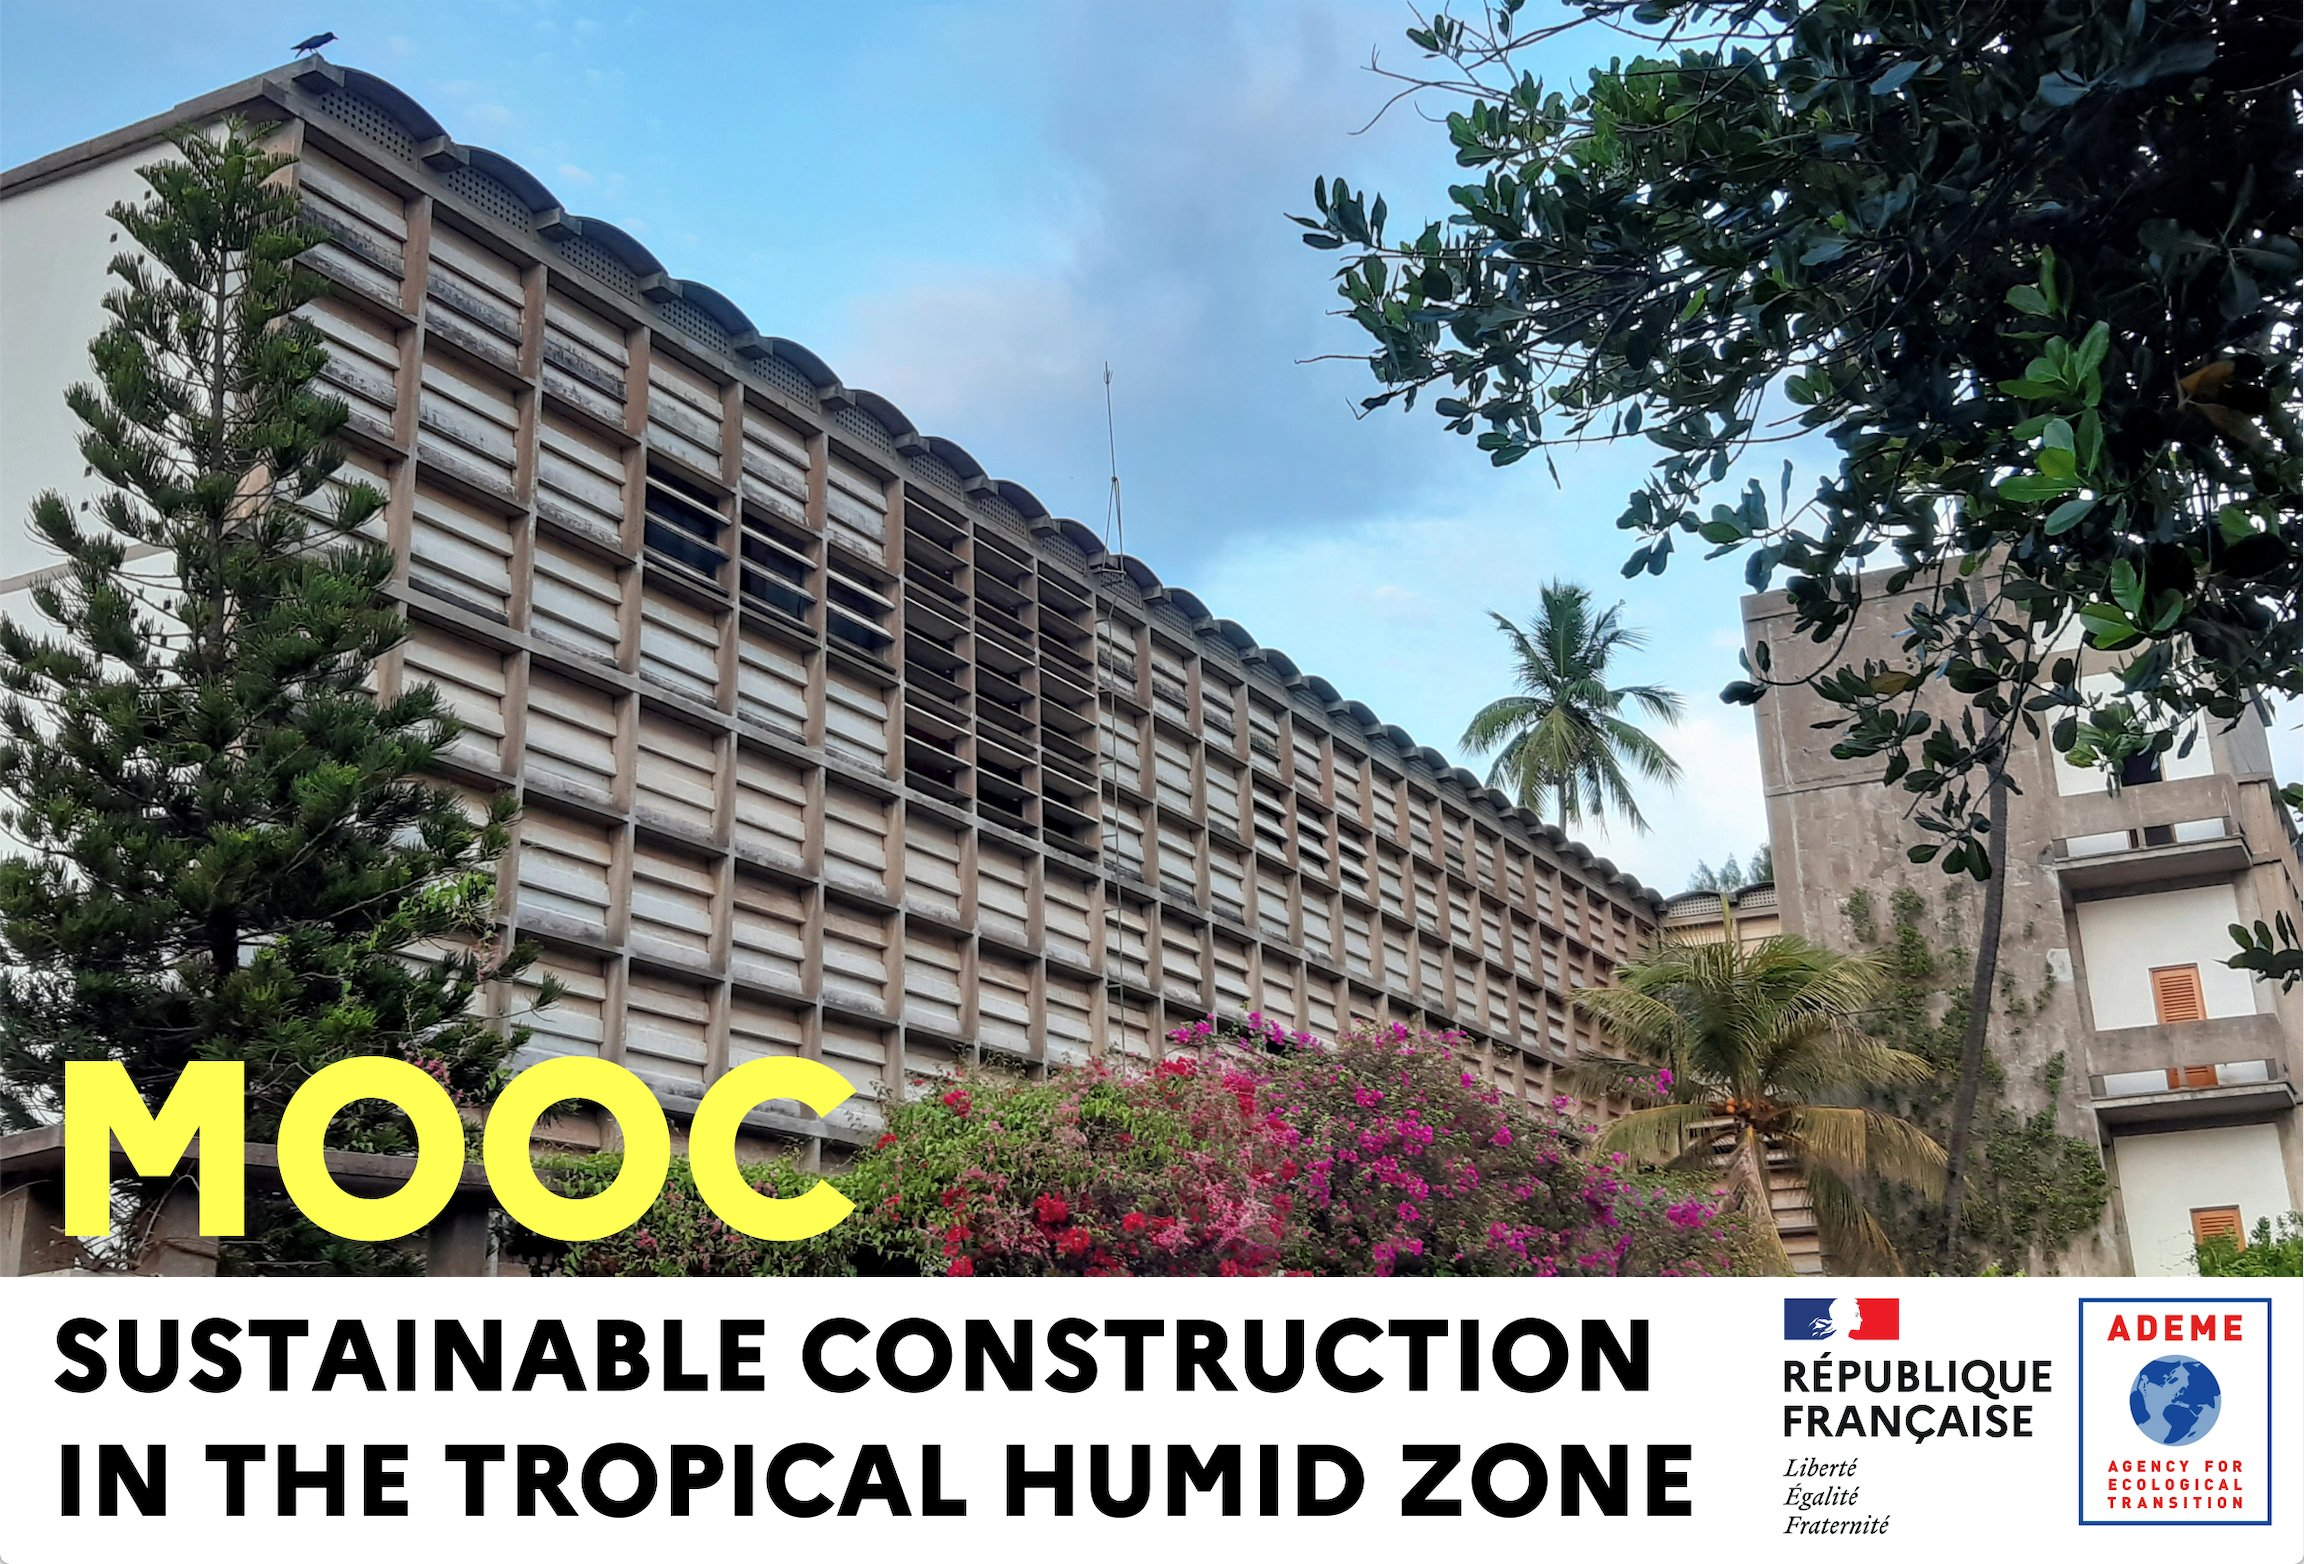 Sustainable Construction in the Tropical Humid Zone Construire durable en zone tropicale humide